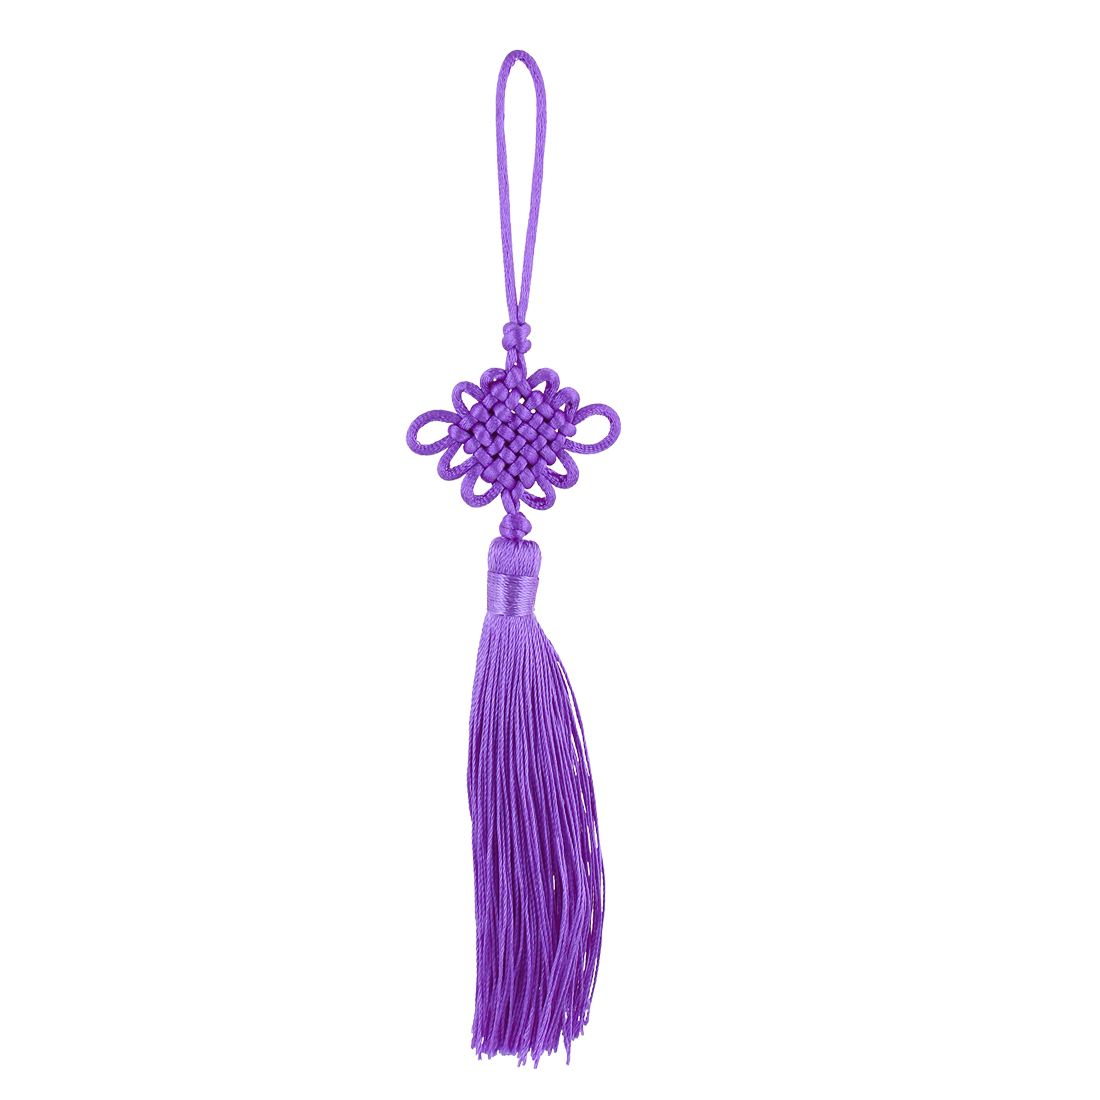 Festival Home Car Handmade Tassel Knitted Chinese Knot Hanging Ornament Purple